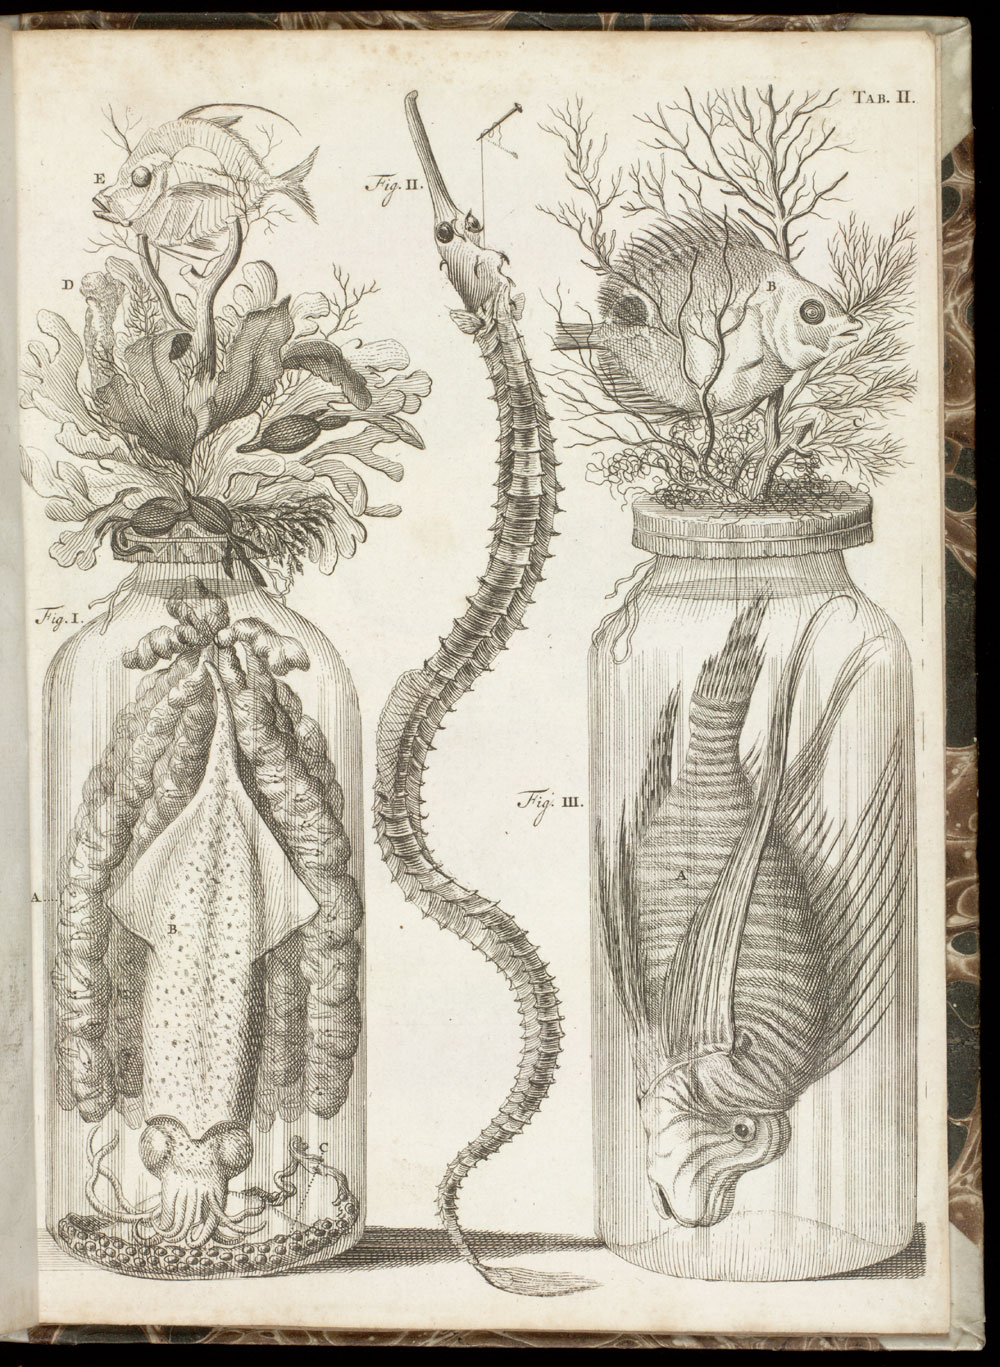 Tab.II: Wet specimens, including fish and mollusk,  Image number:SIL21-20-002